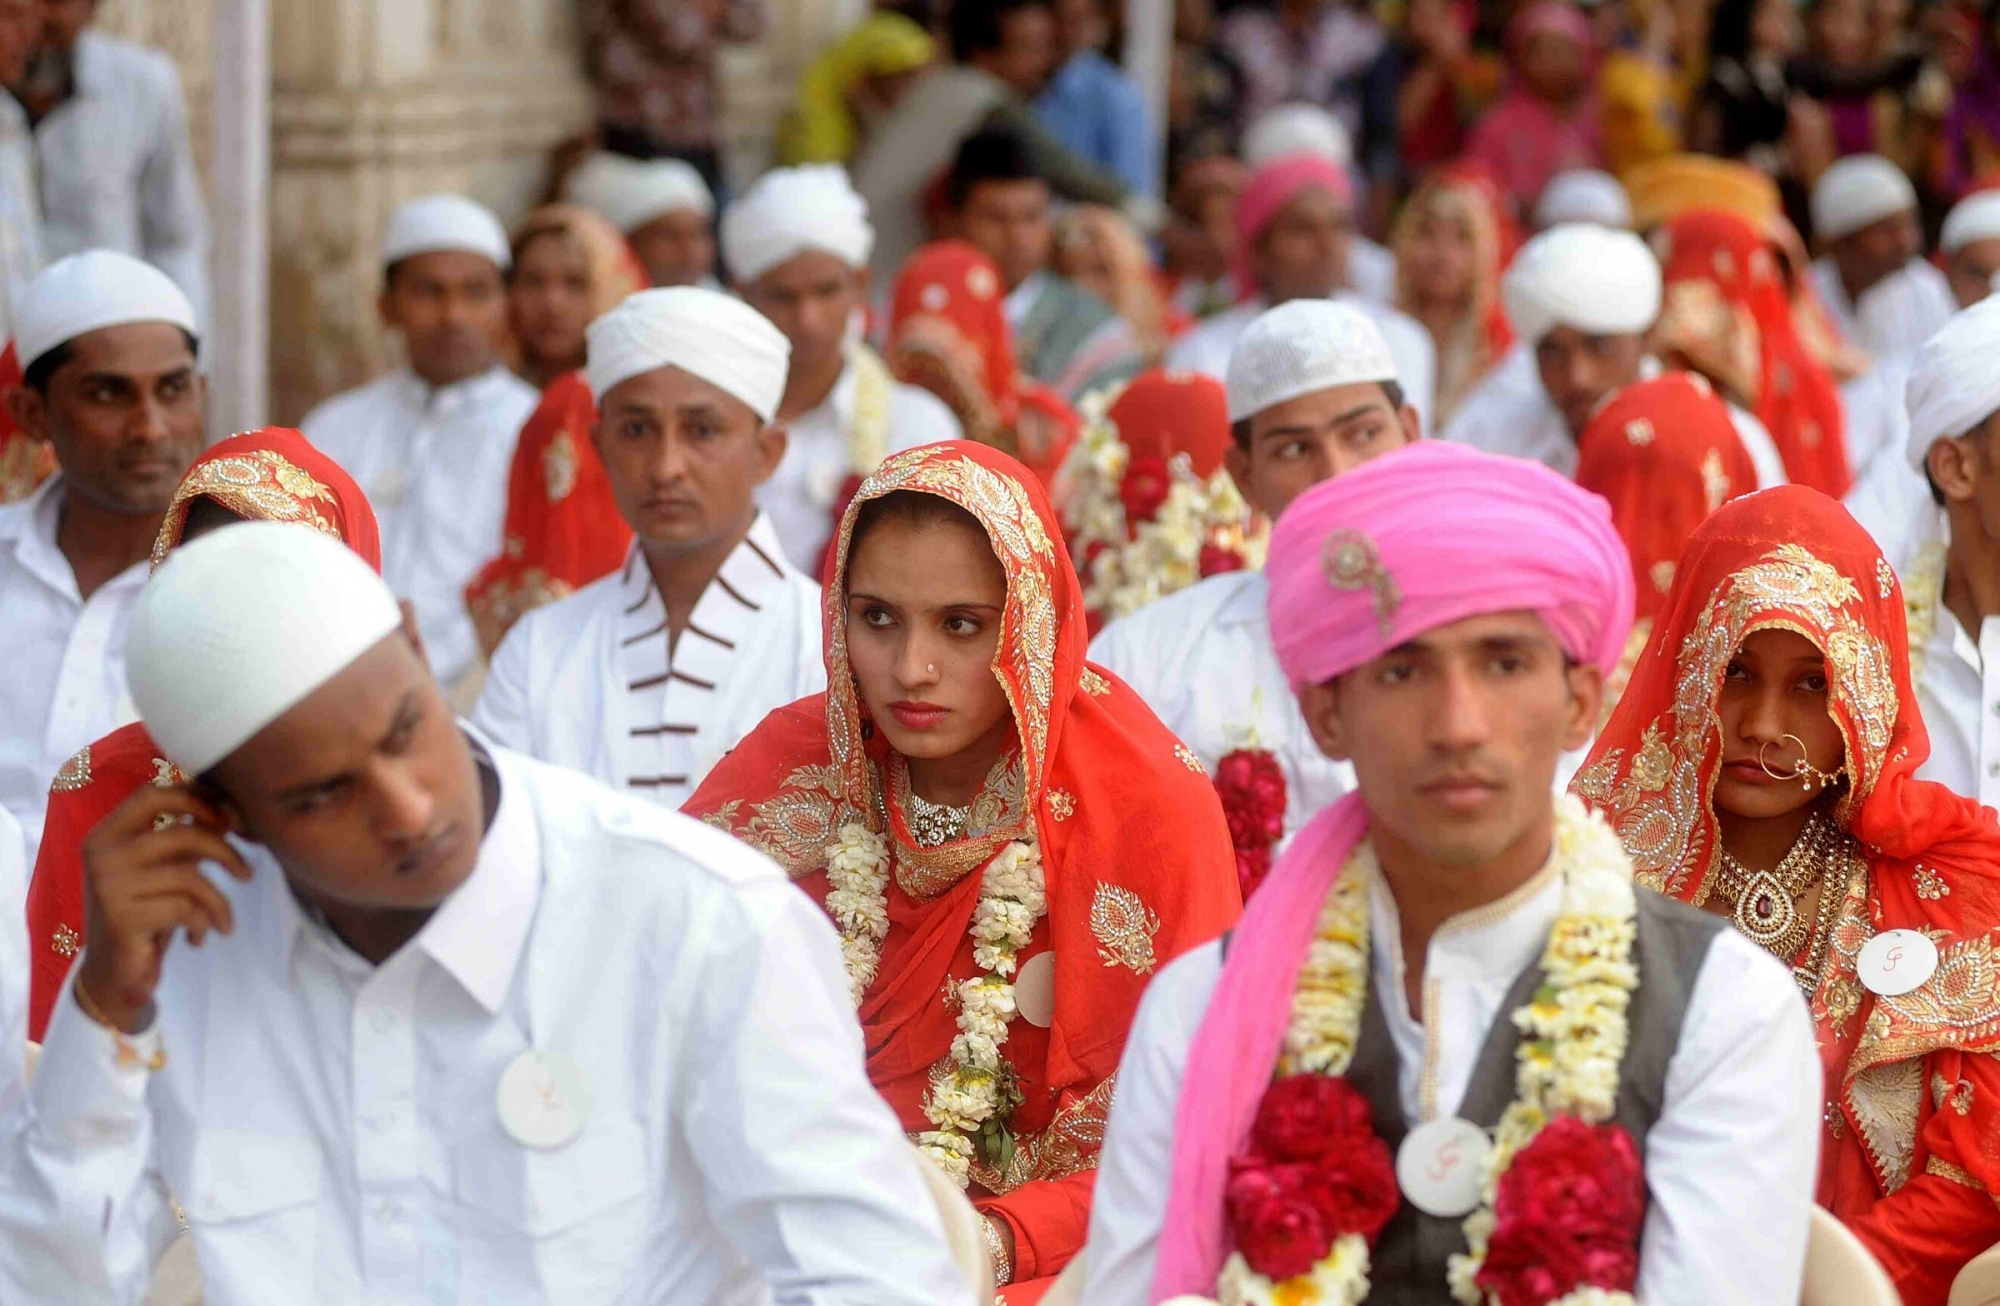 Ahmedabad: The newlywed couples during a mass marriage organised by the Hussaini Vaqf Committee in Ahmedabad on Jan 22, 2016. (Photo: IANS)